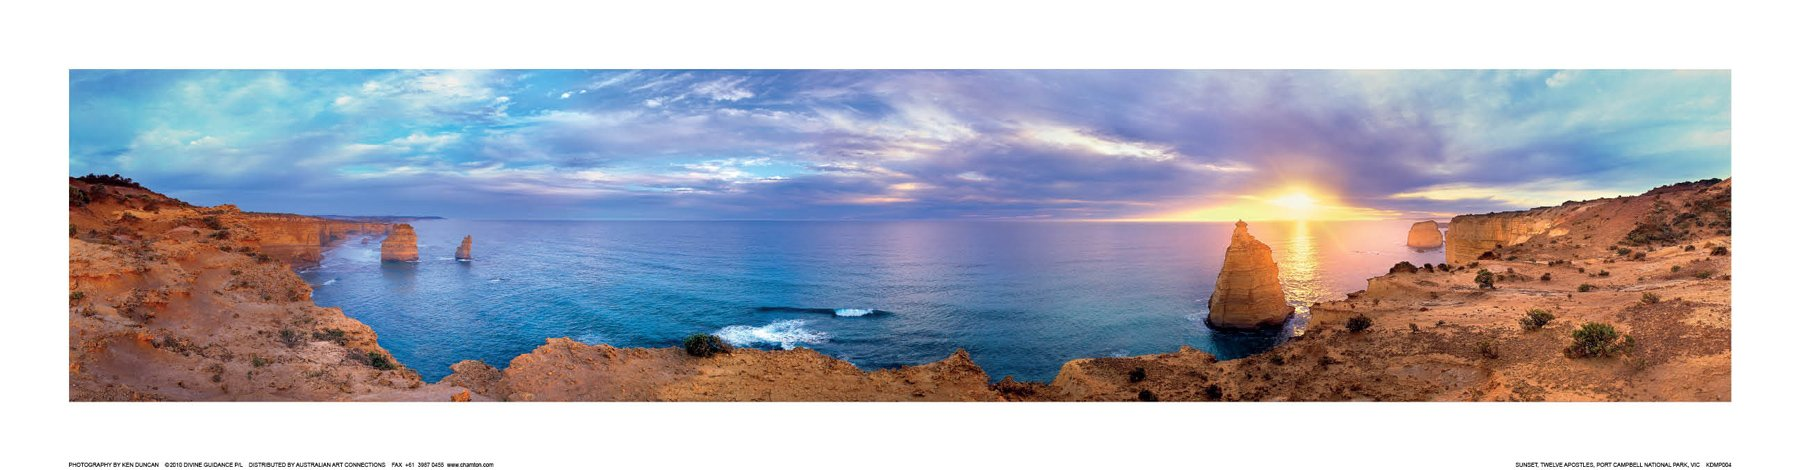 Sunset, Twelve Apostles, Port Campbell N.p. VIC